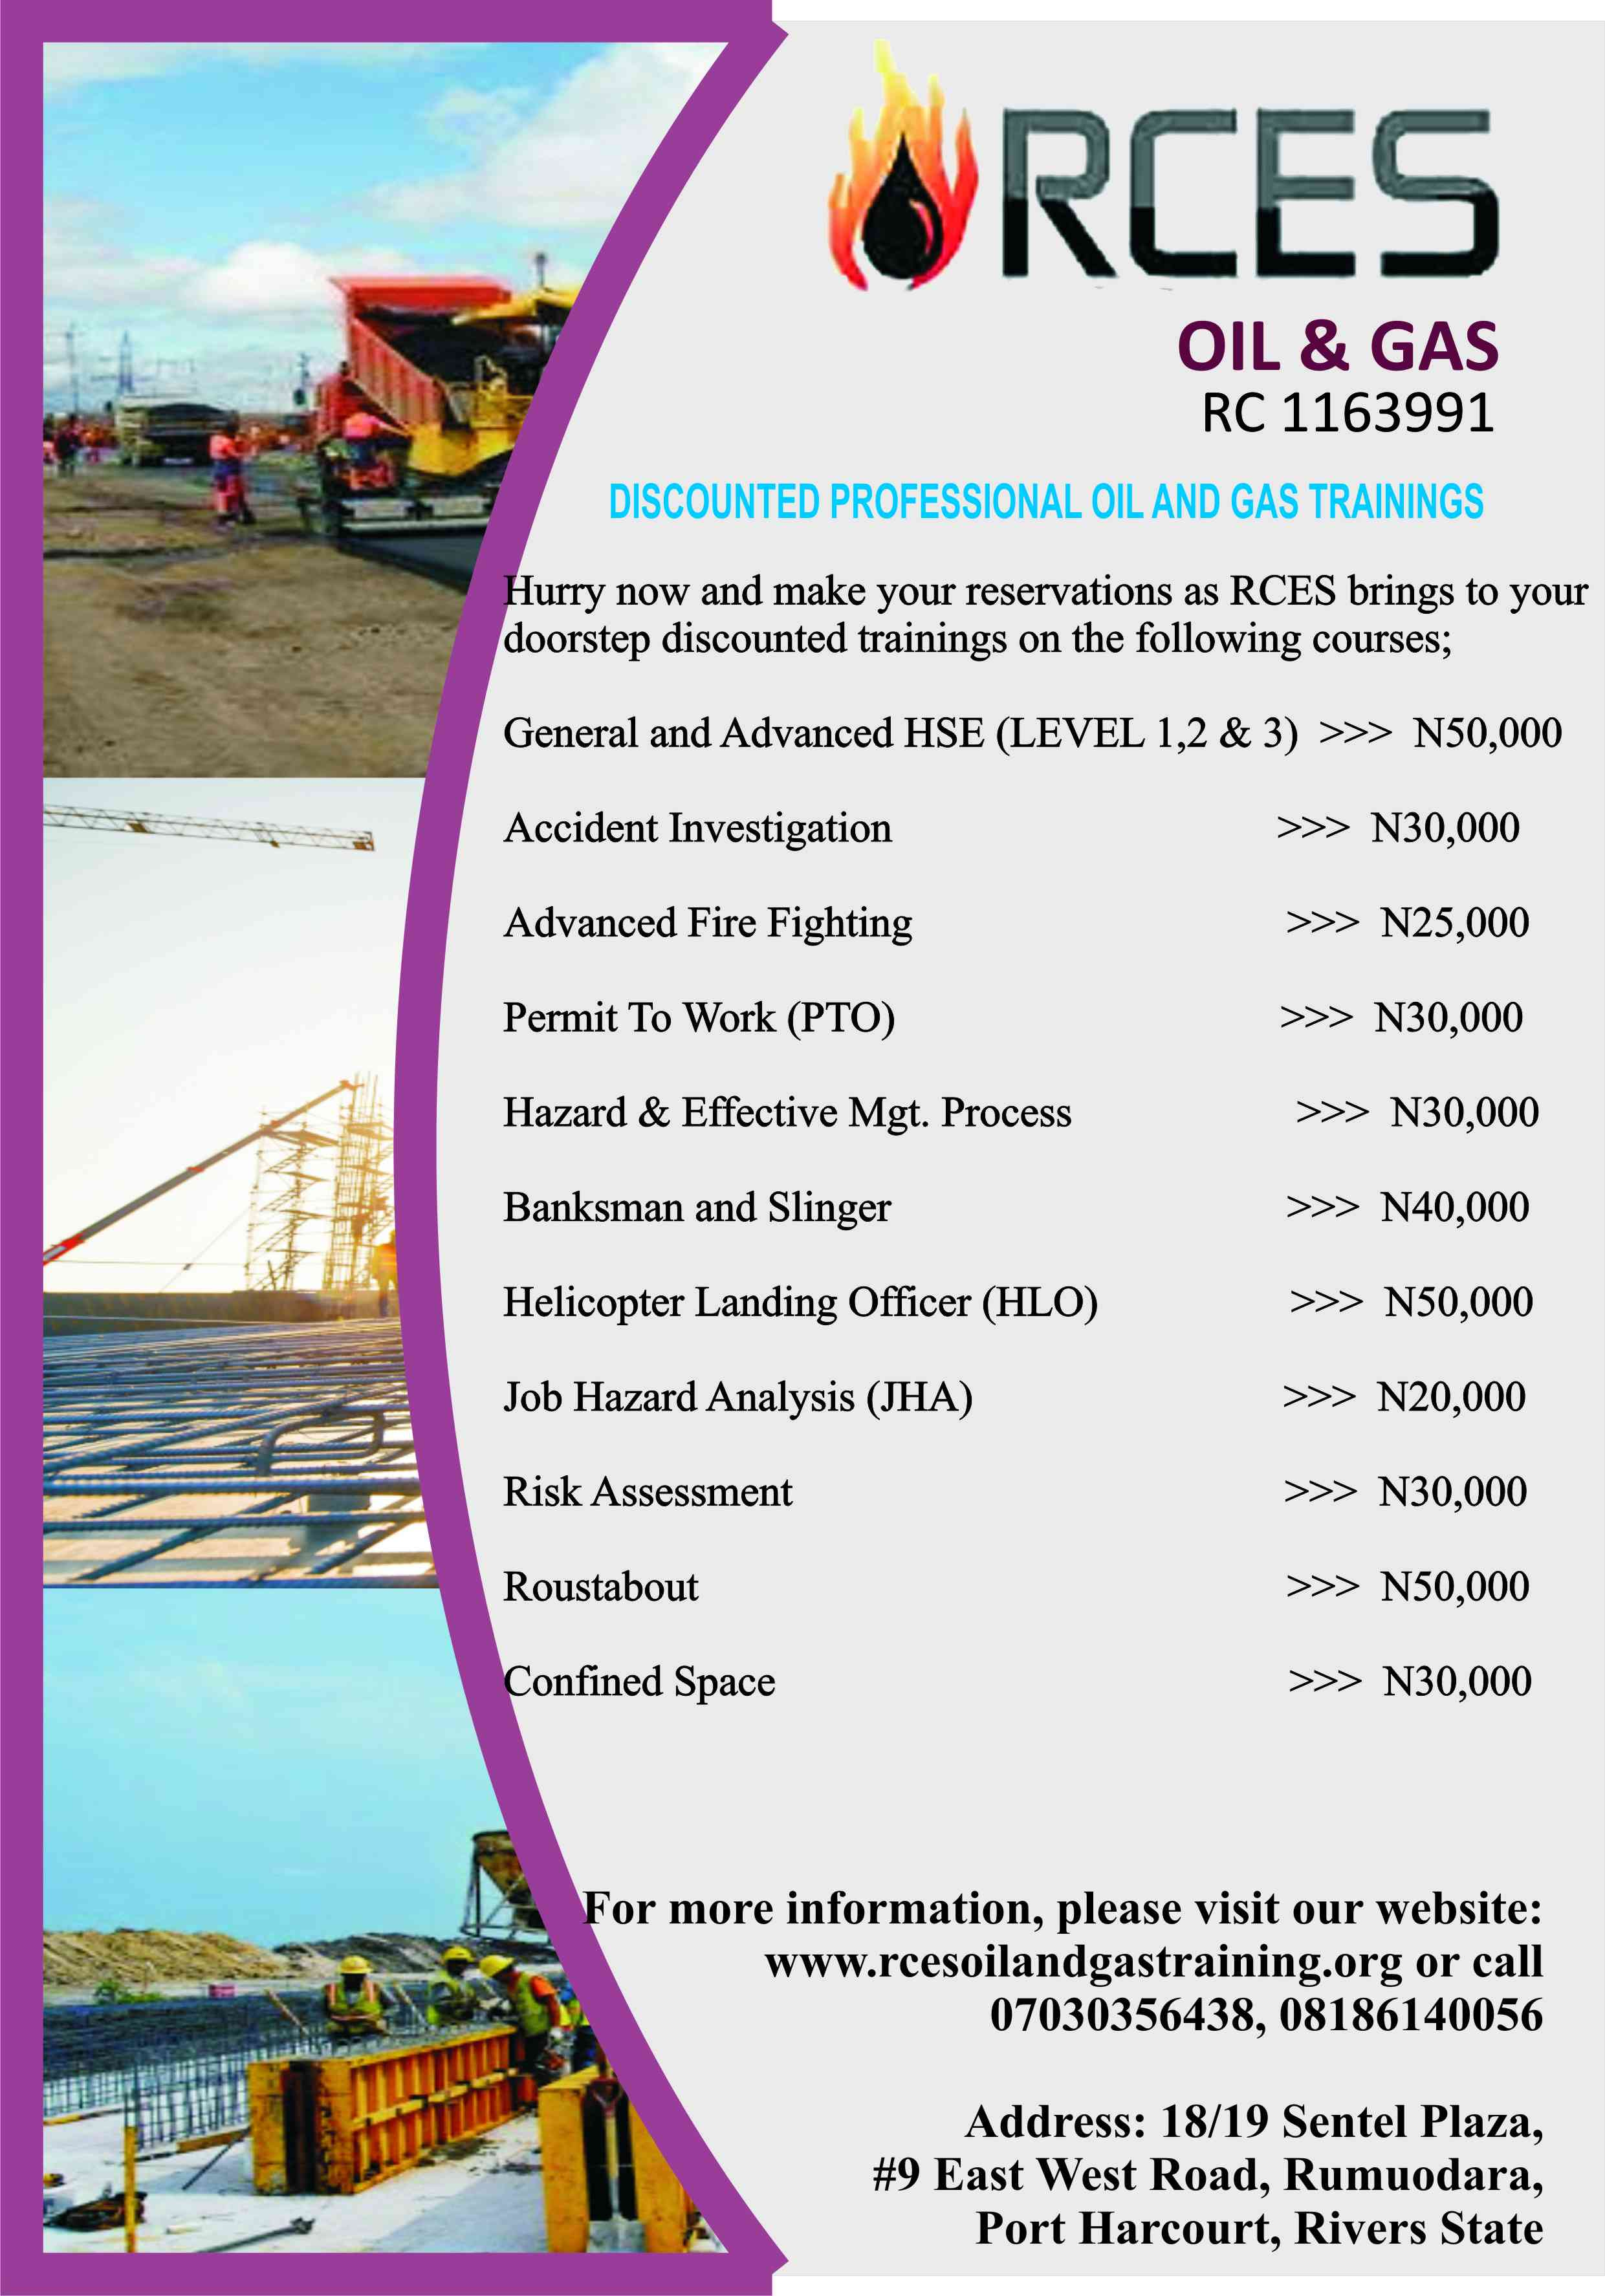 DISCOUNTED PROFESSIONAL OIL AND GAS TRAINING